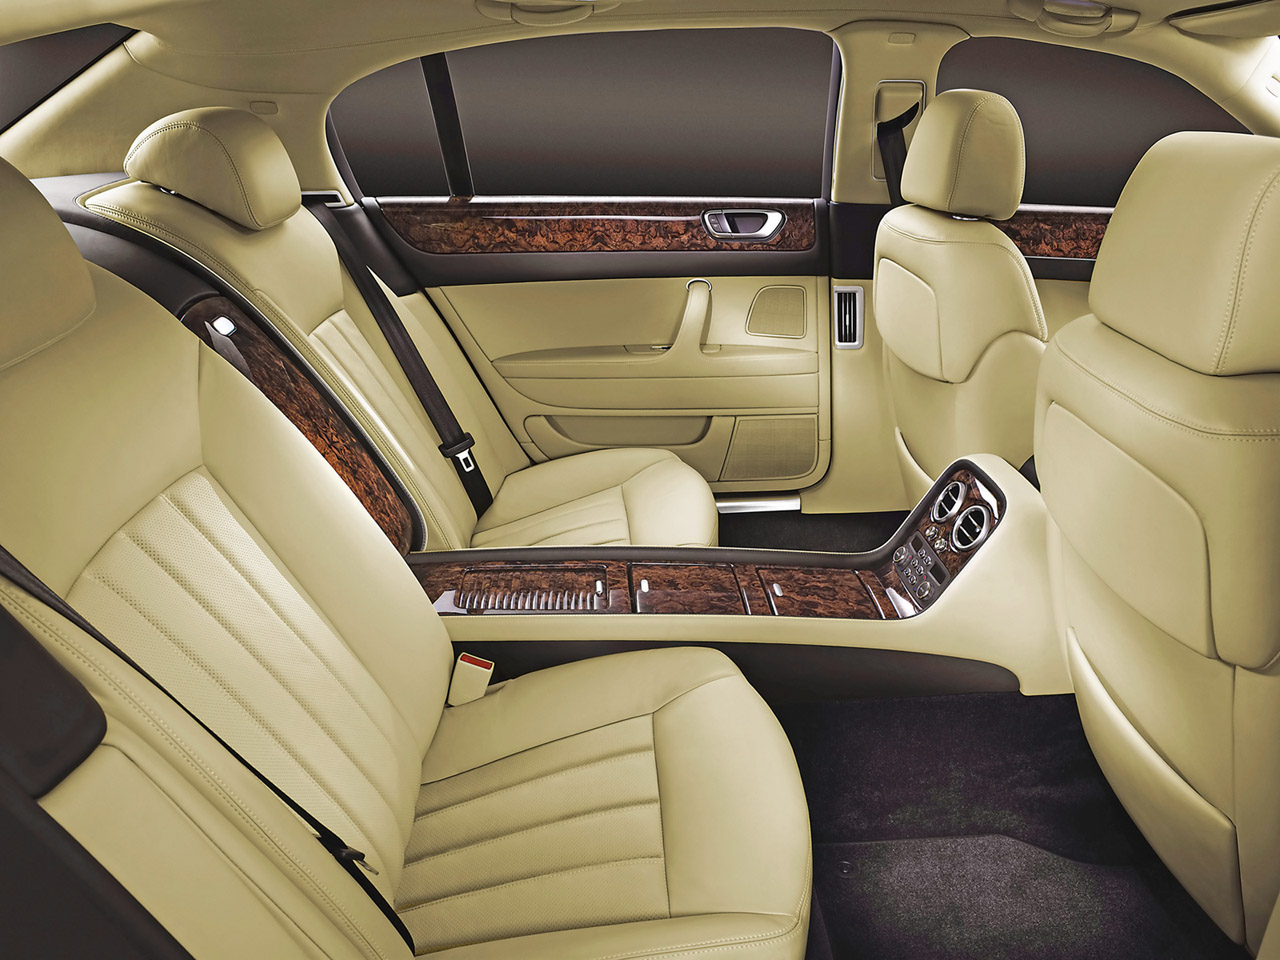 Tamerlane 39 s thoughts bentley continental flying spur vw phaeton interior comparison